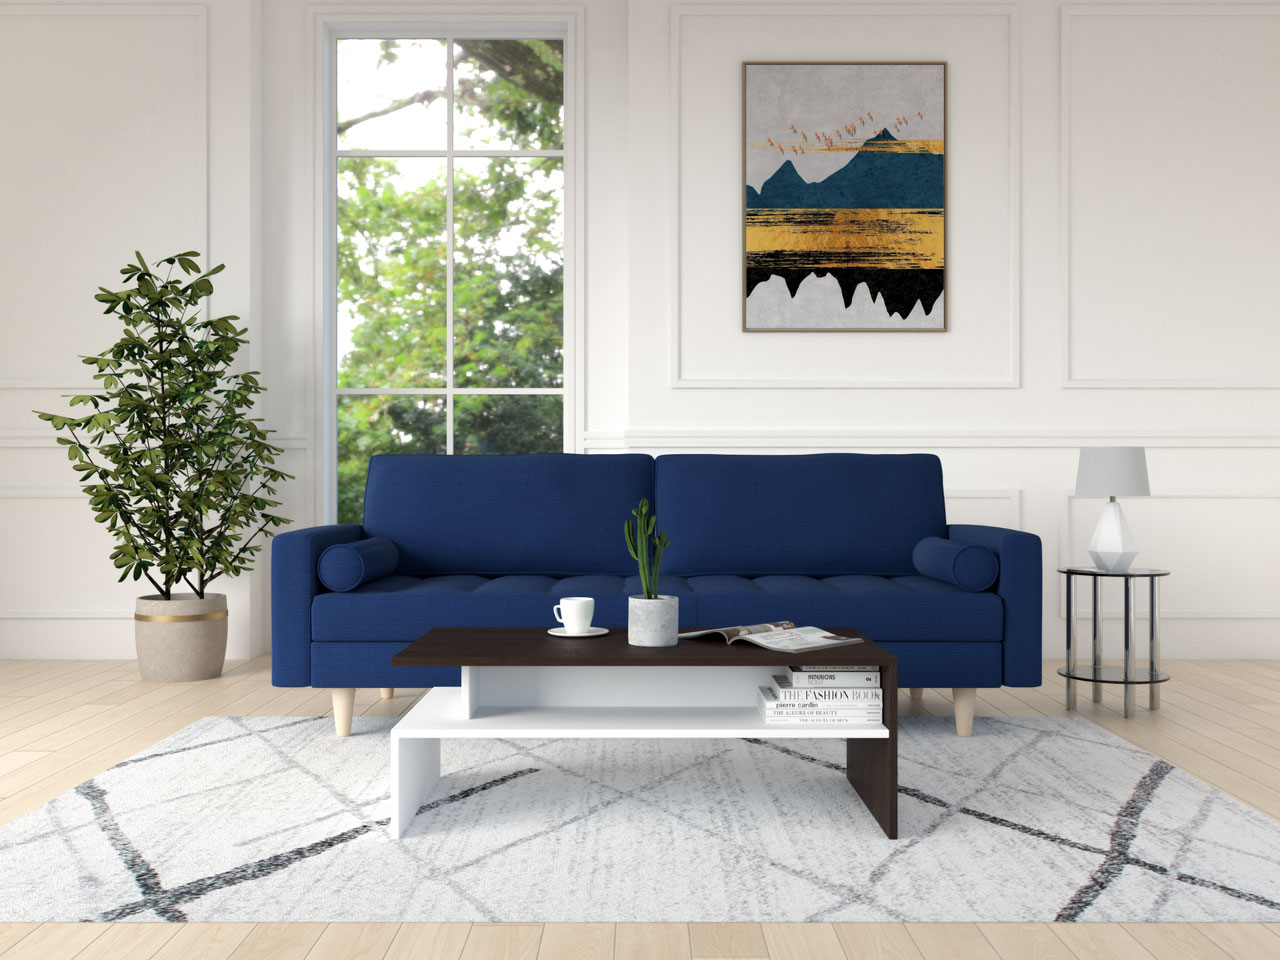 Dark brown and white coffee table with a blue sofa